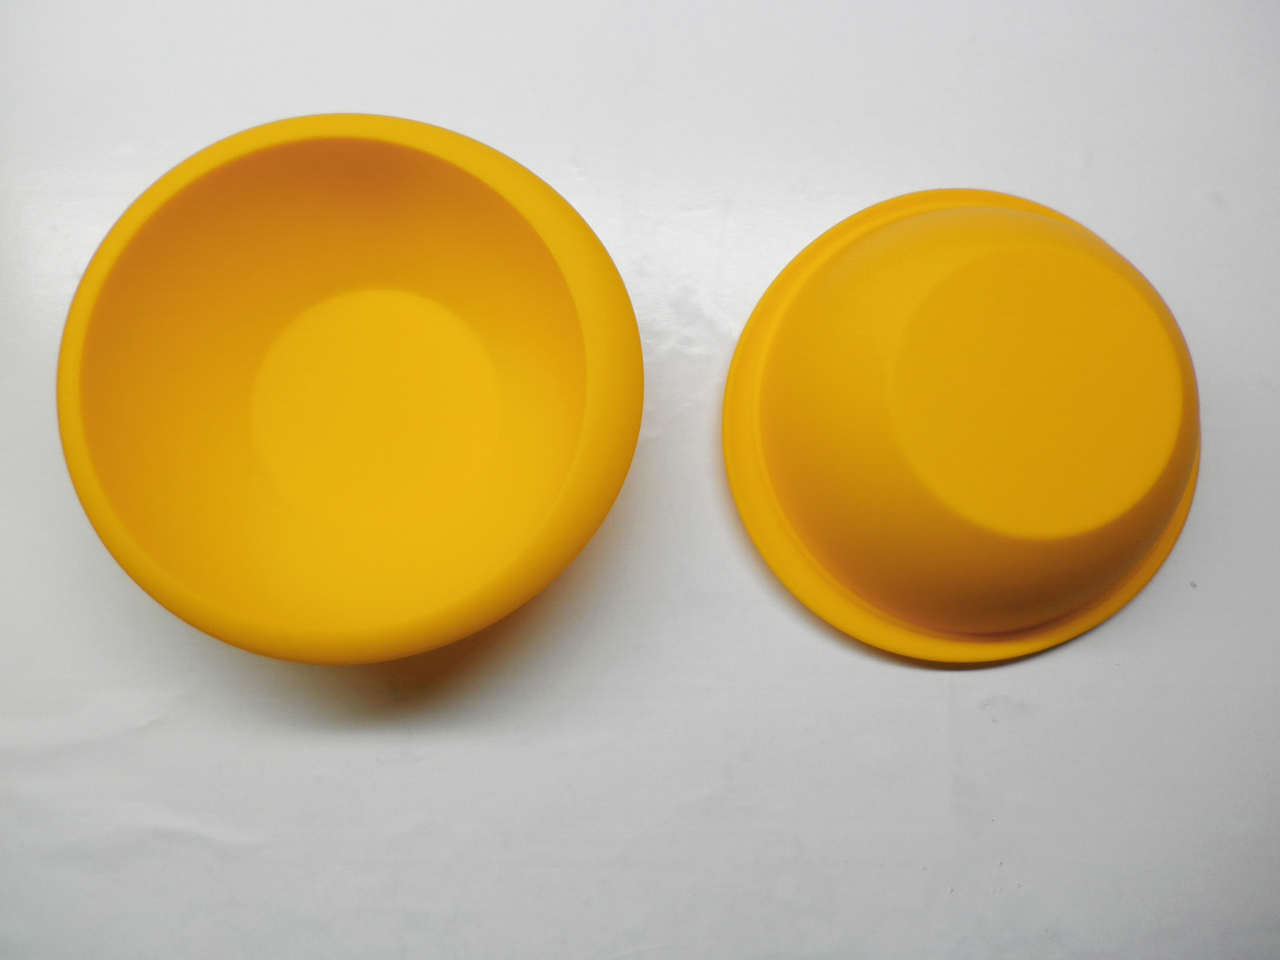 http://www.refinehksilicone.cn/data/images/product/20180418100221_574.jpg